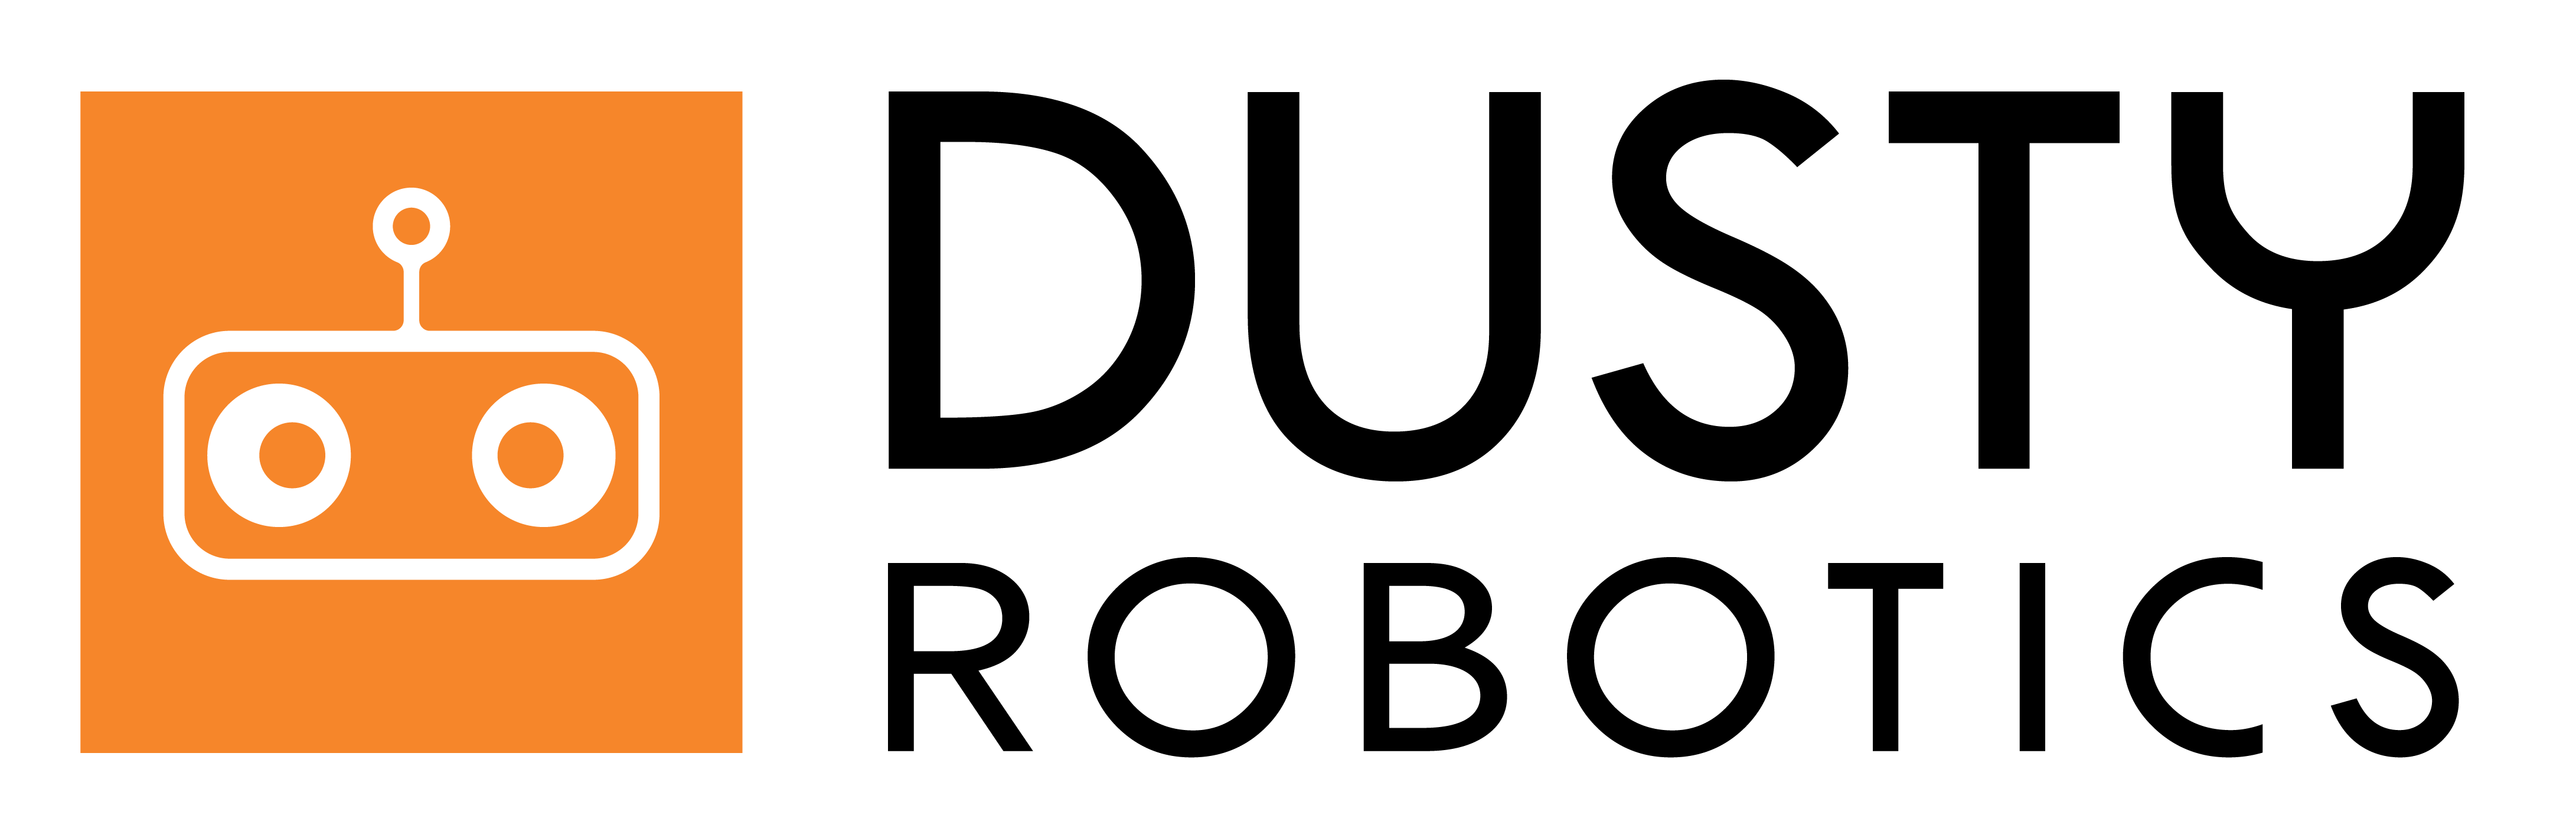 Dusty Robotics Horizontal